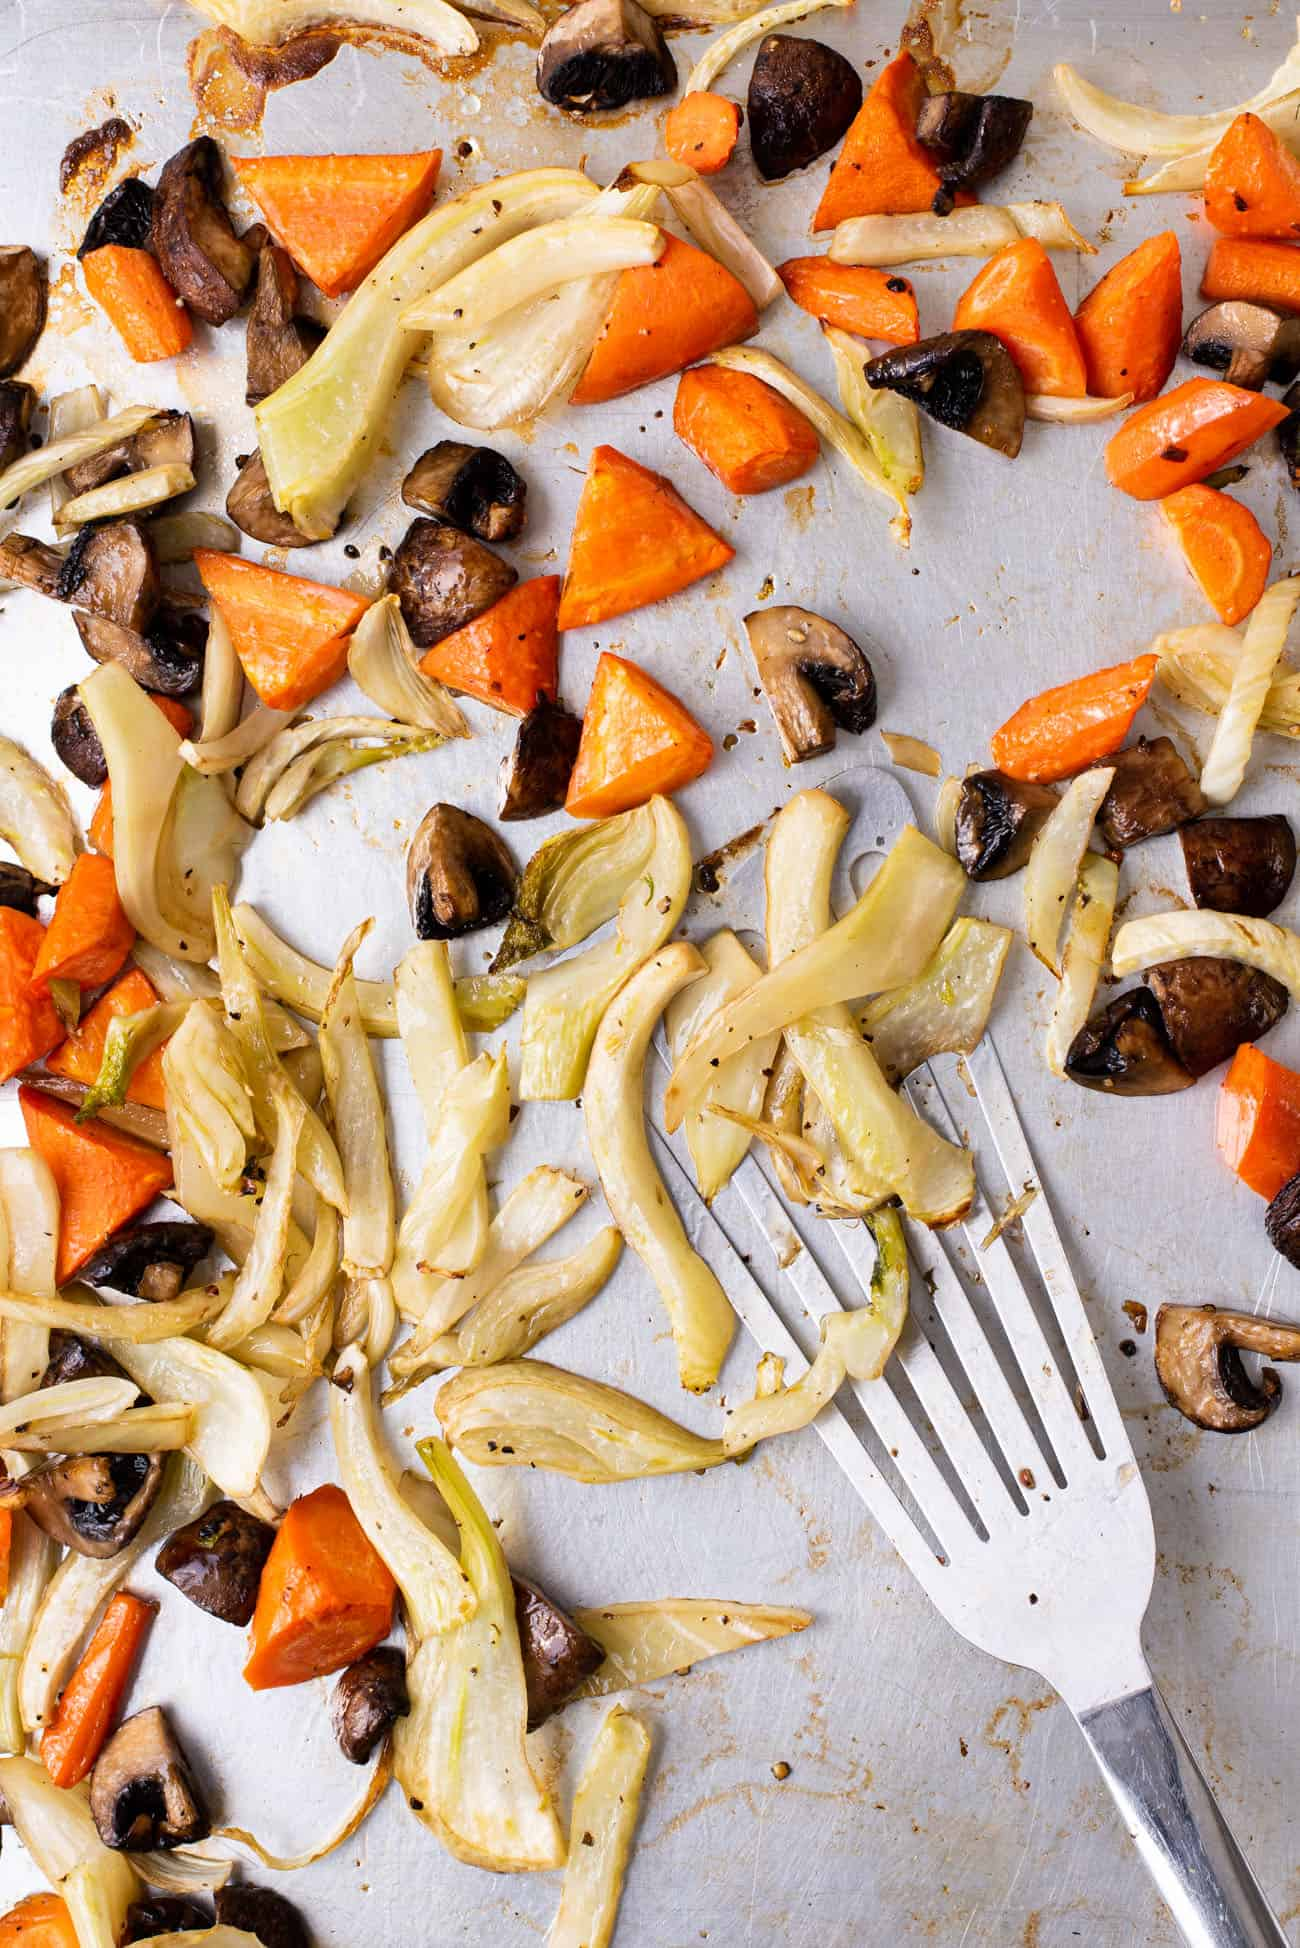 Roasted carrots, fennel, and mushrooms on a baking sheet